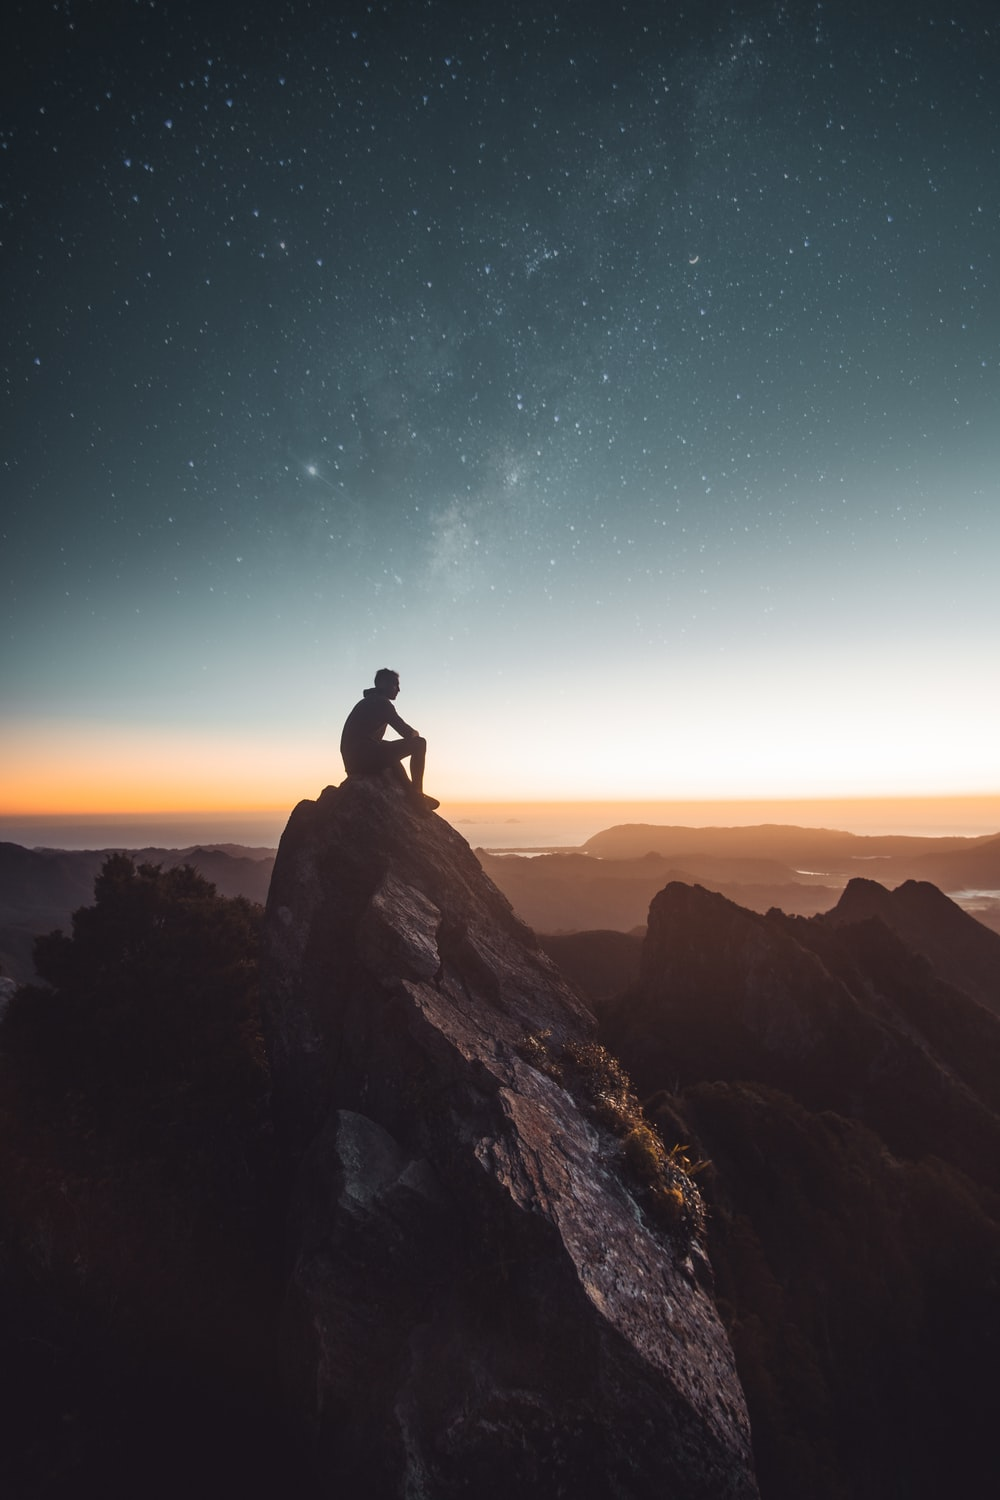 silhouette of person sitting on rock formation during golden hour